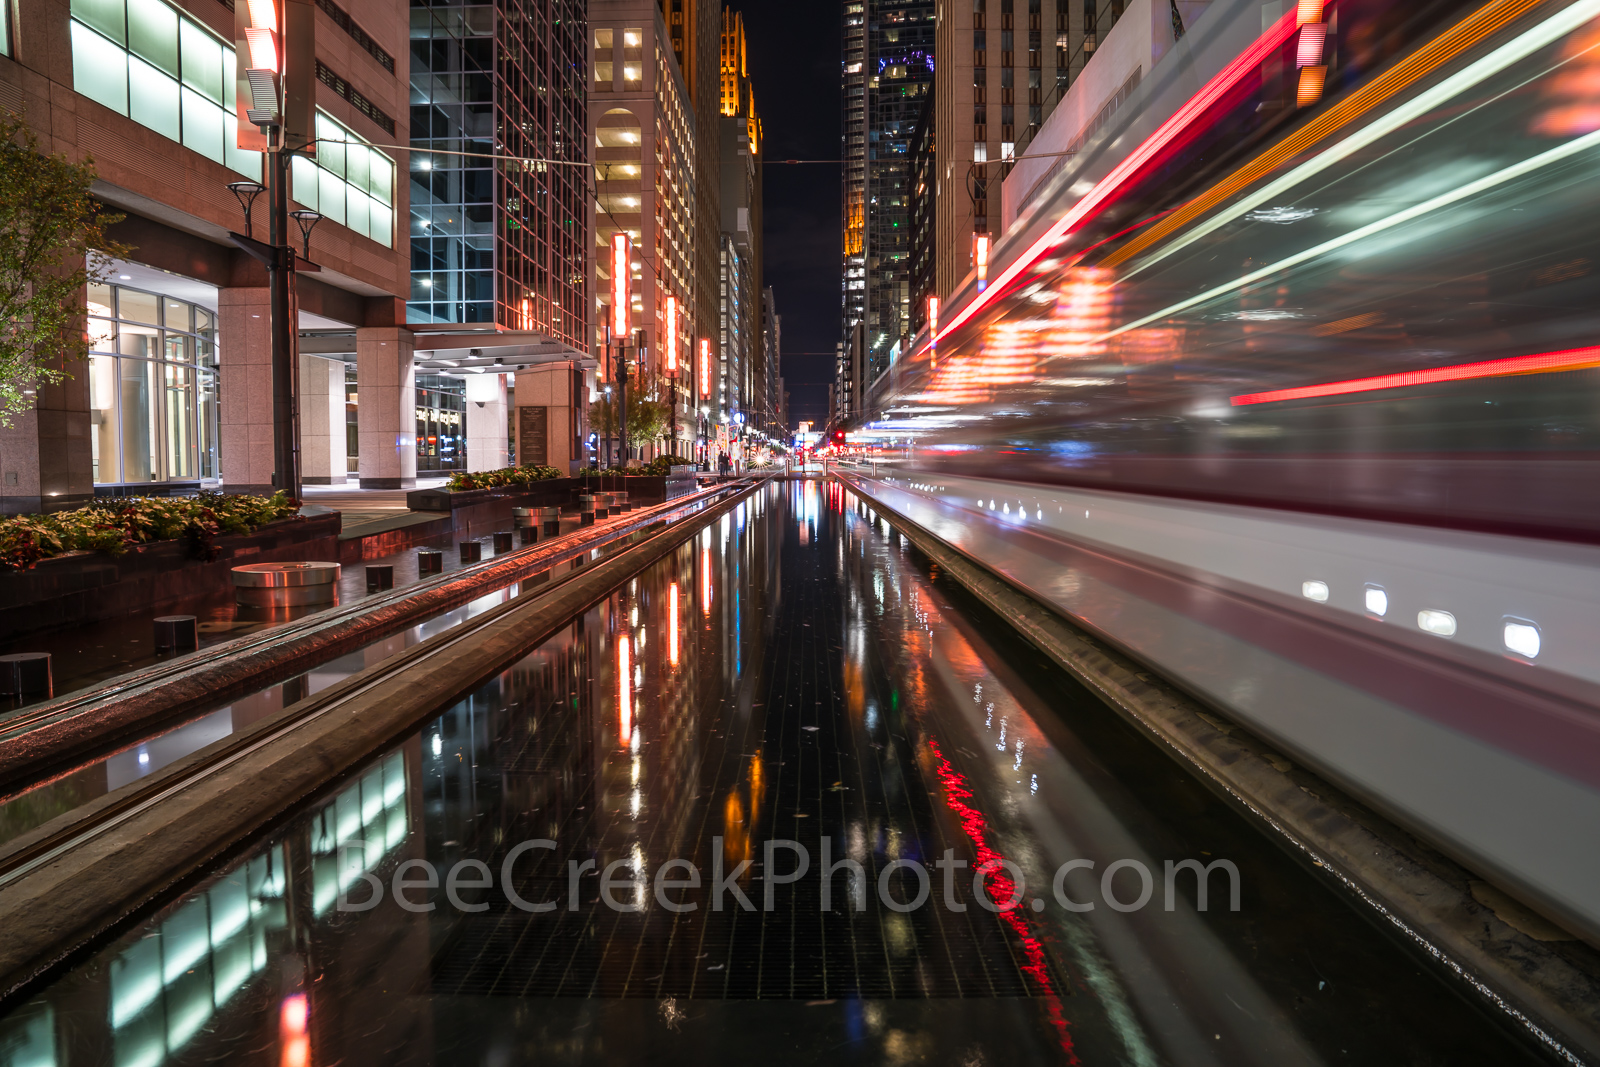 Houston Downtown Rail Night - This is image of the Houston rail system after dark as on of the trains zooms by in a...